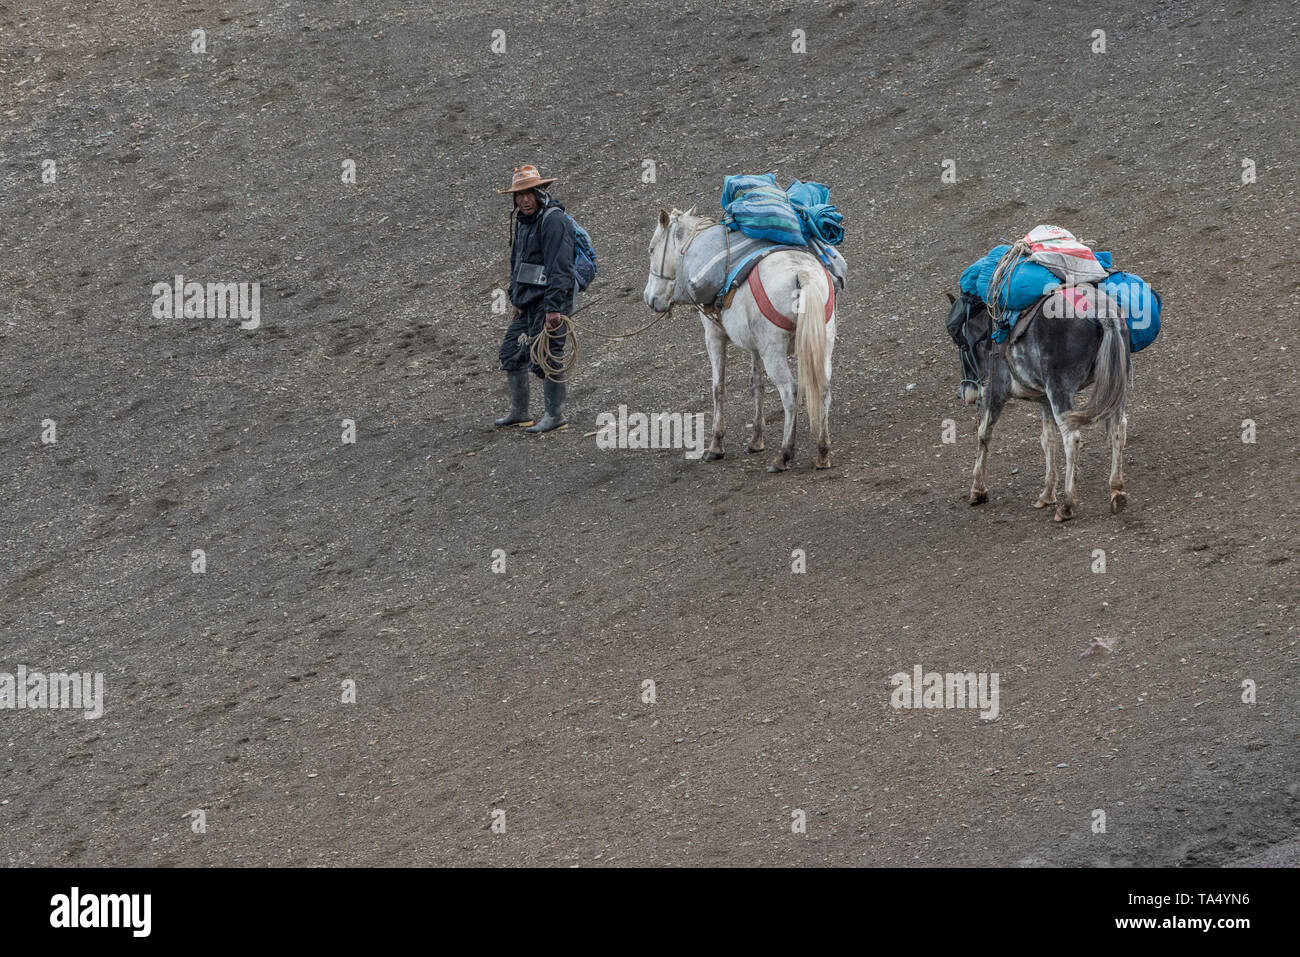 A quechua man working as an arriero leads a fully loaded packhorse up a steep slope in the Andes Mountains in Southern Peru. - Stock Image